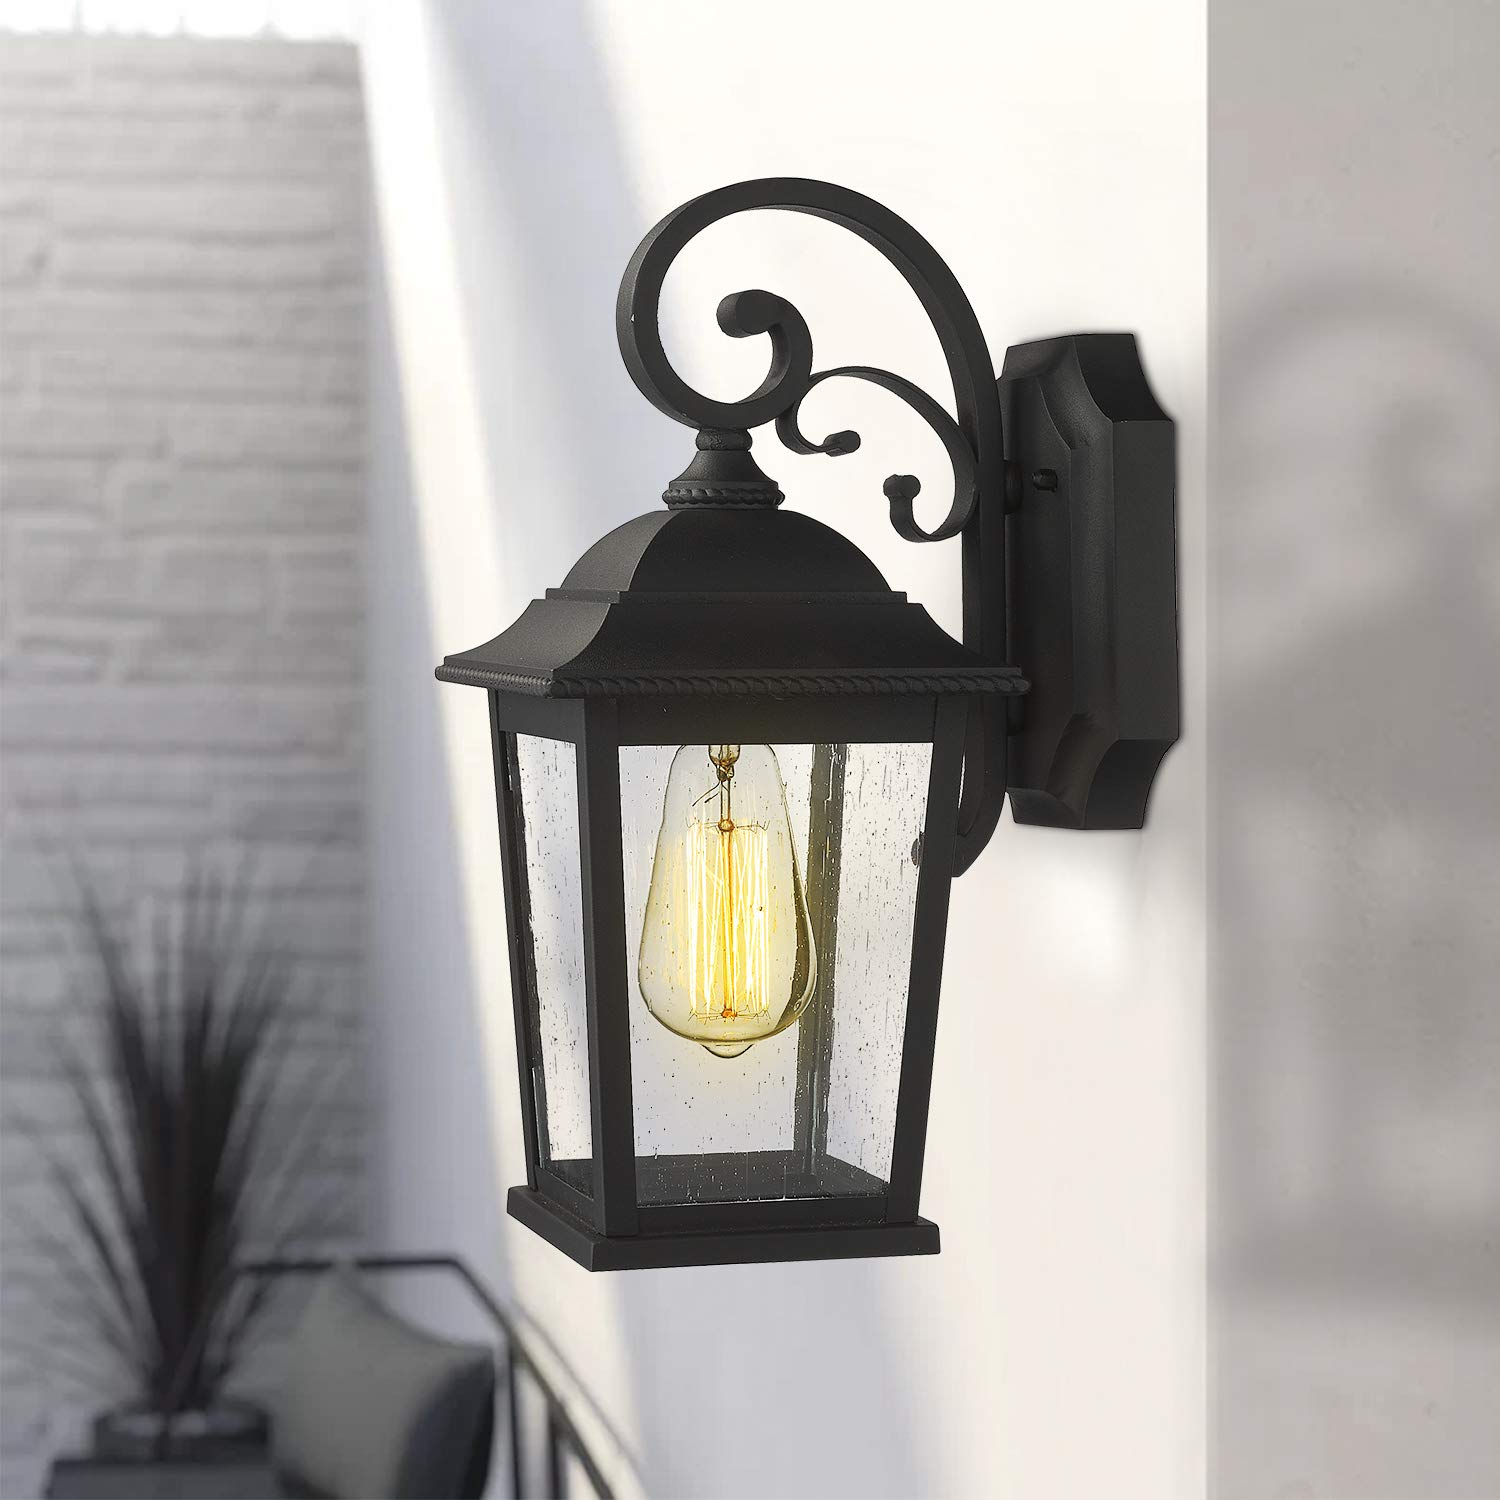 Emliviar Outdoor Wall Lantern Sconce 15 Inch Exterior Wall Lights Modern Design Black Finish With Seeded Glass De19105b1 Bk